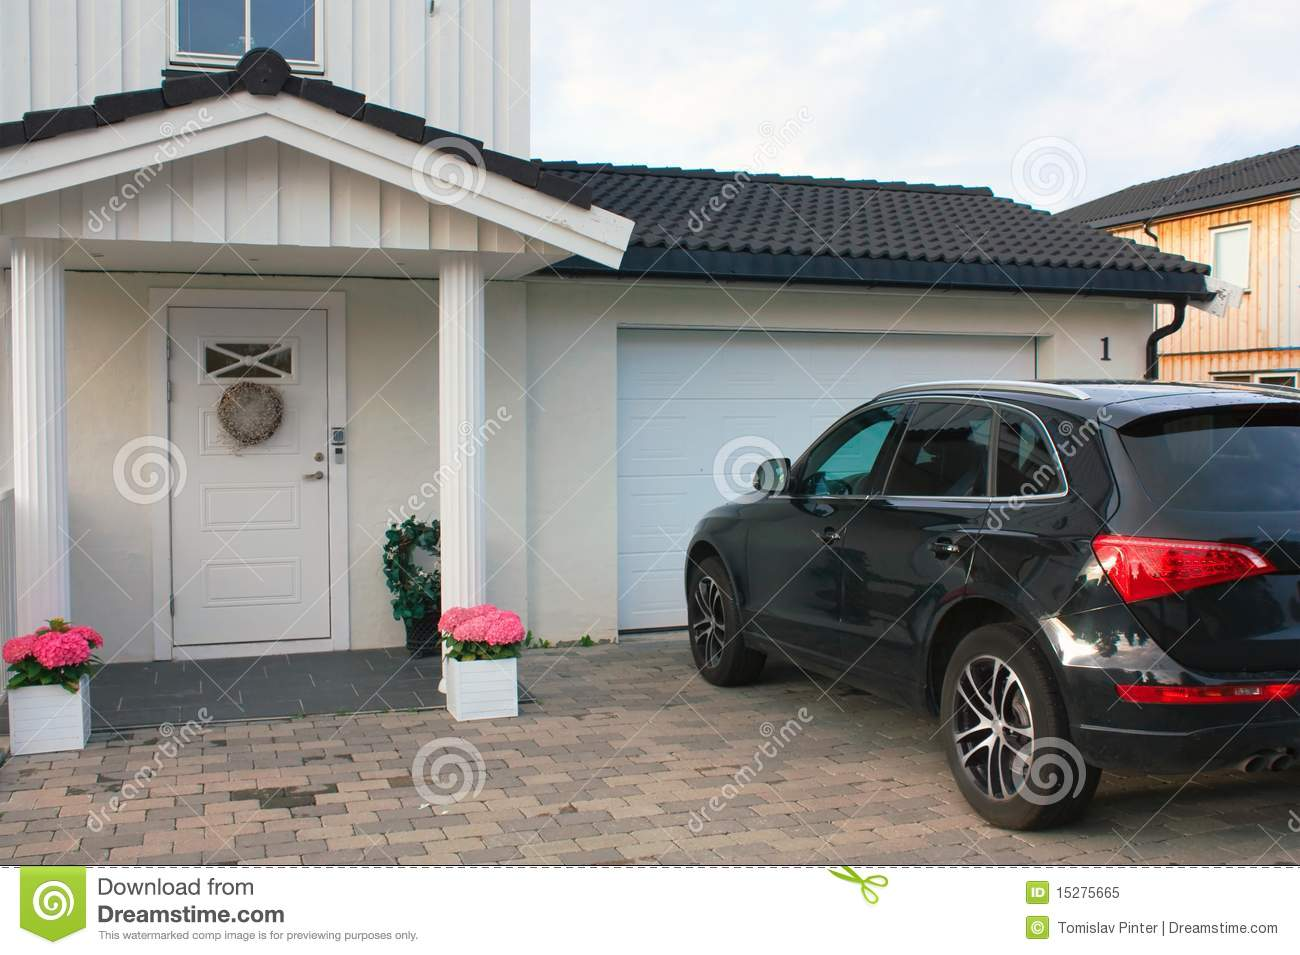 Luxury House And Car luxury life - house and car royalty free stock photo - image: 15275665